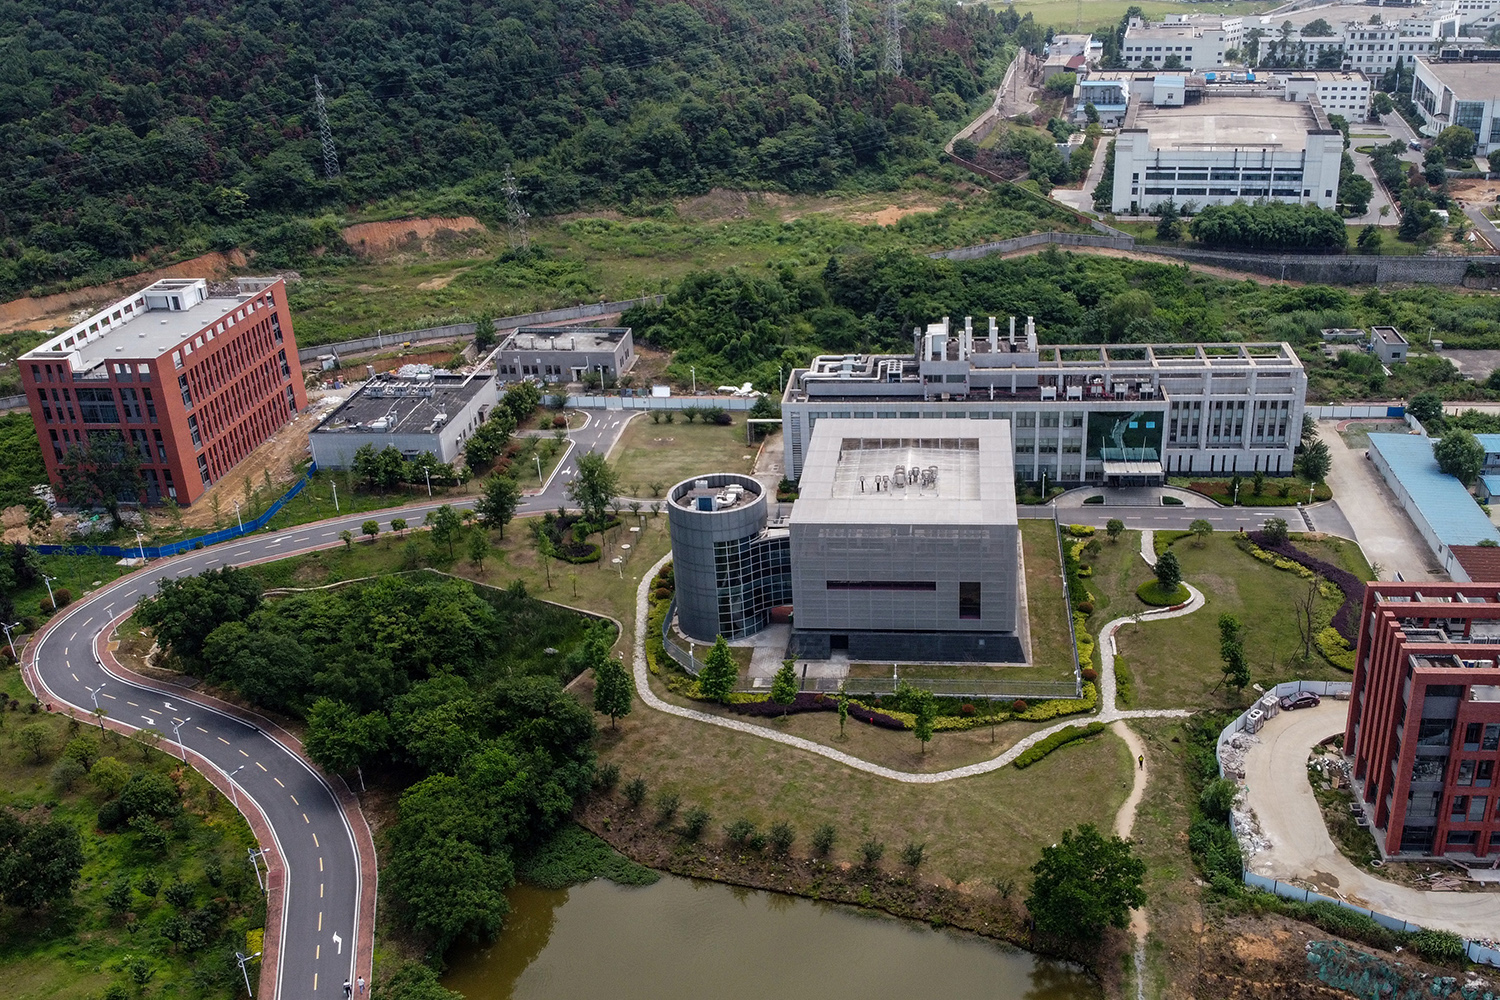 An aerial view of the Wuhan Institute of Virology in Wuhan, China, on May 27, 2020.